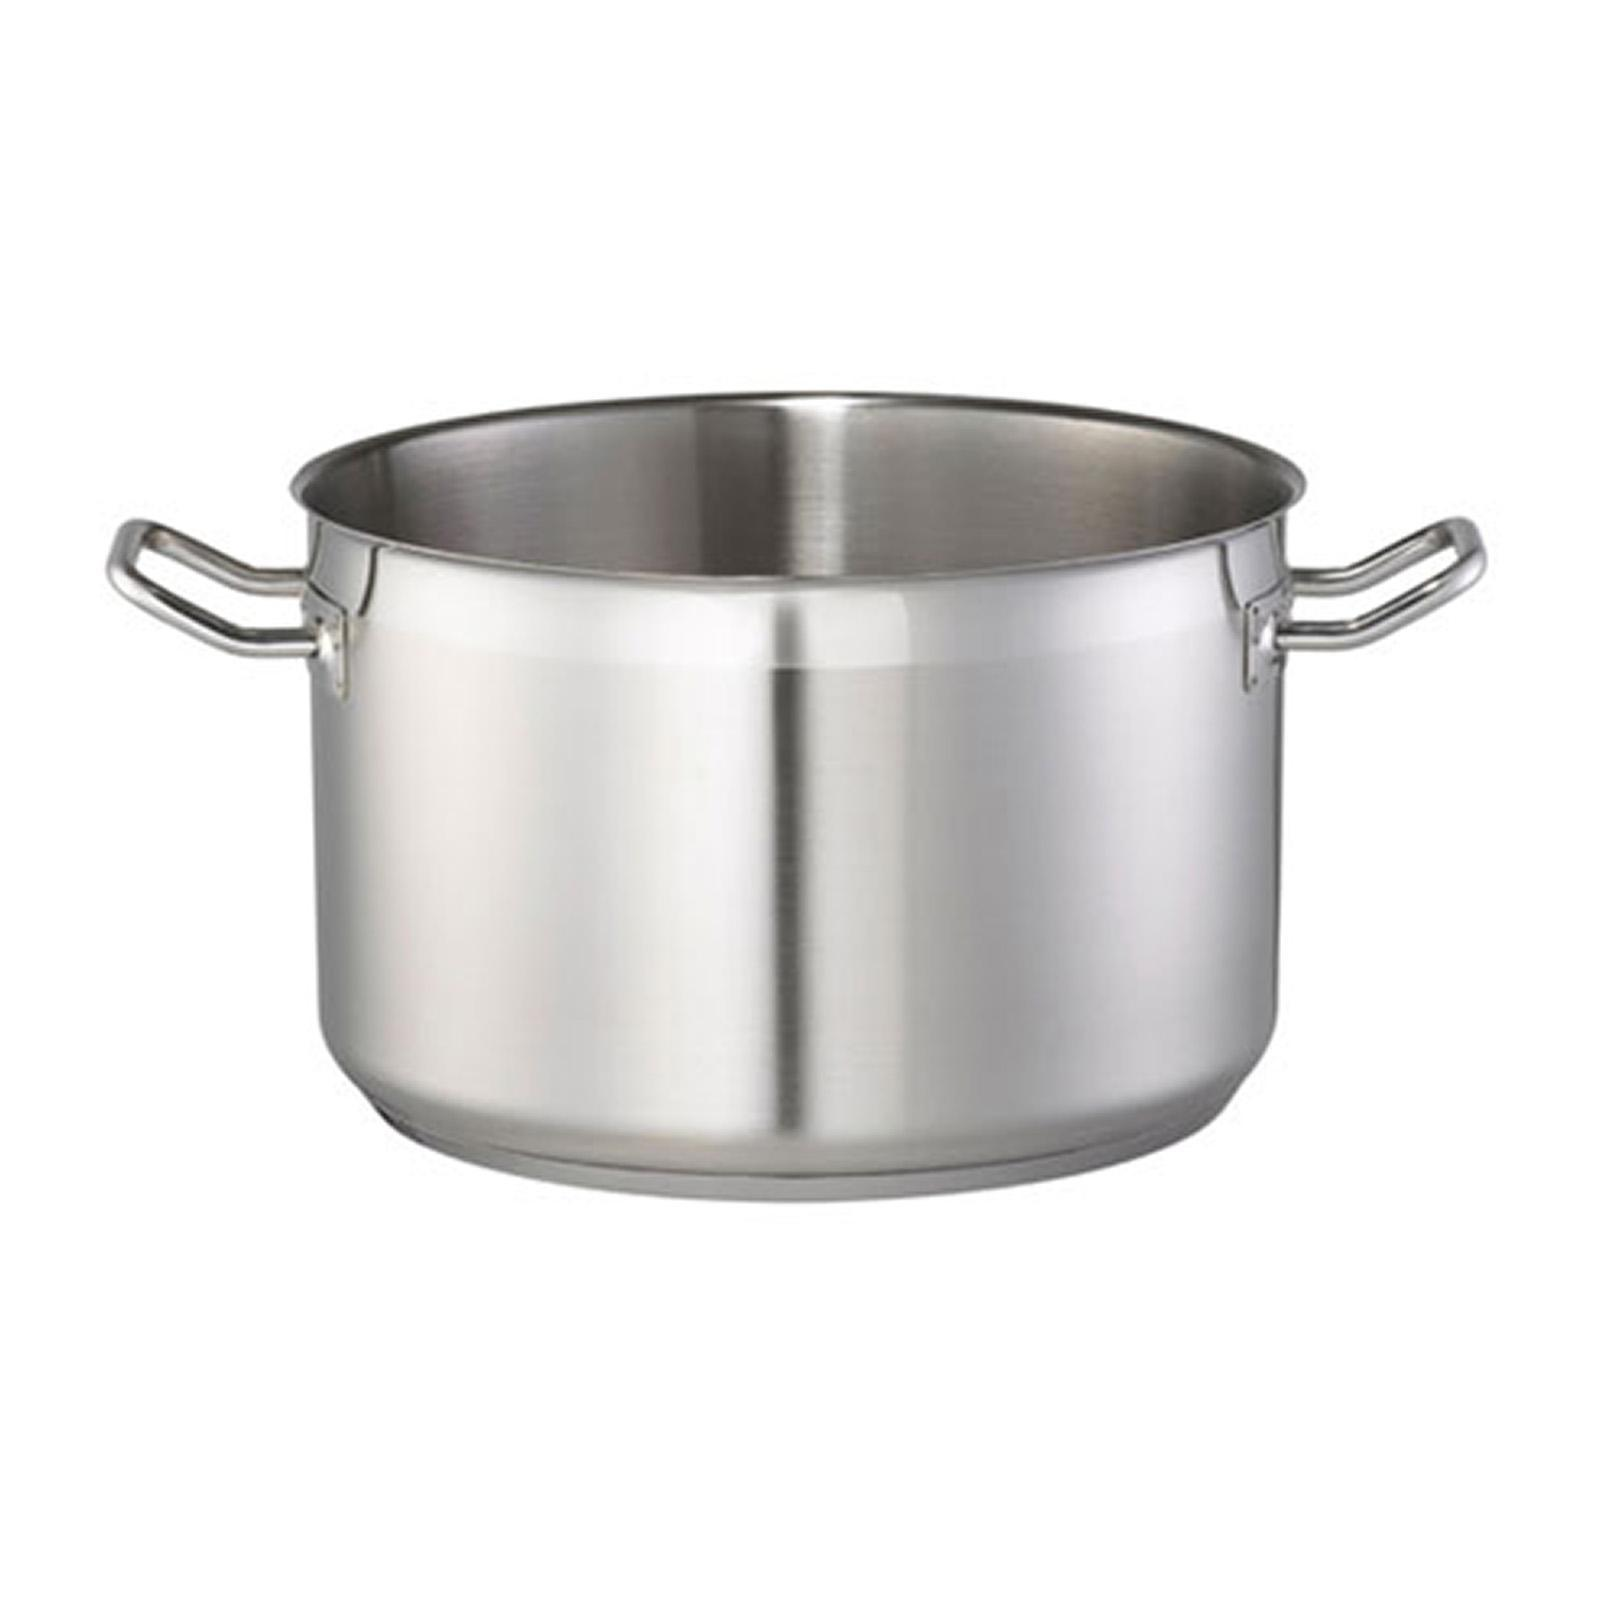 Safico Stainless Steel High Casserole (28 X H17 CM) - By ToTT